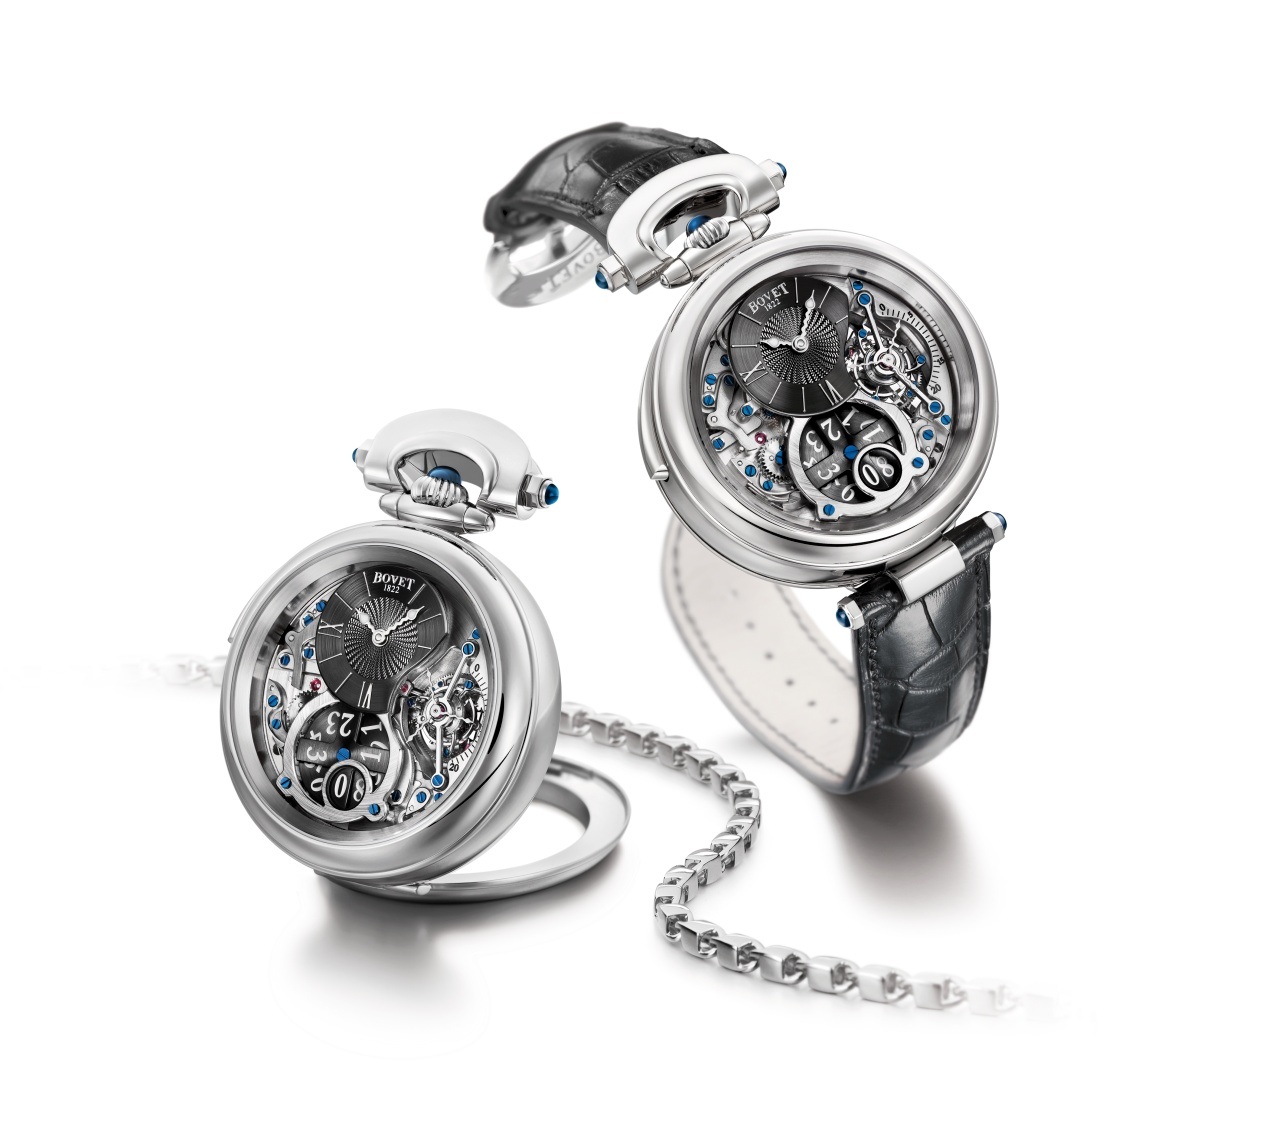 Bovet Watch   Amadeo Fleurier Grandes Complications   Ref. Nr.  AIGDA002    Call 312-944-3100  | For Availability